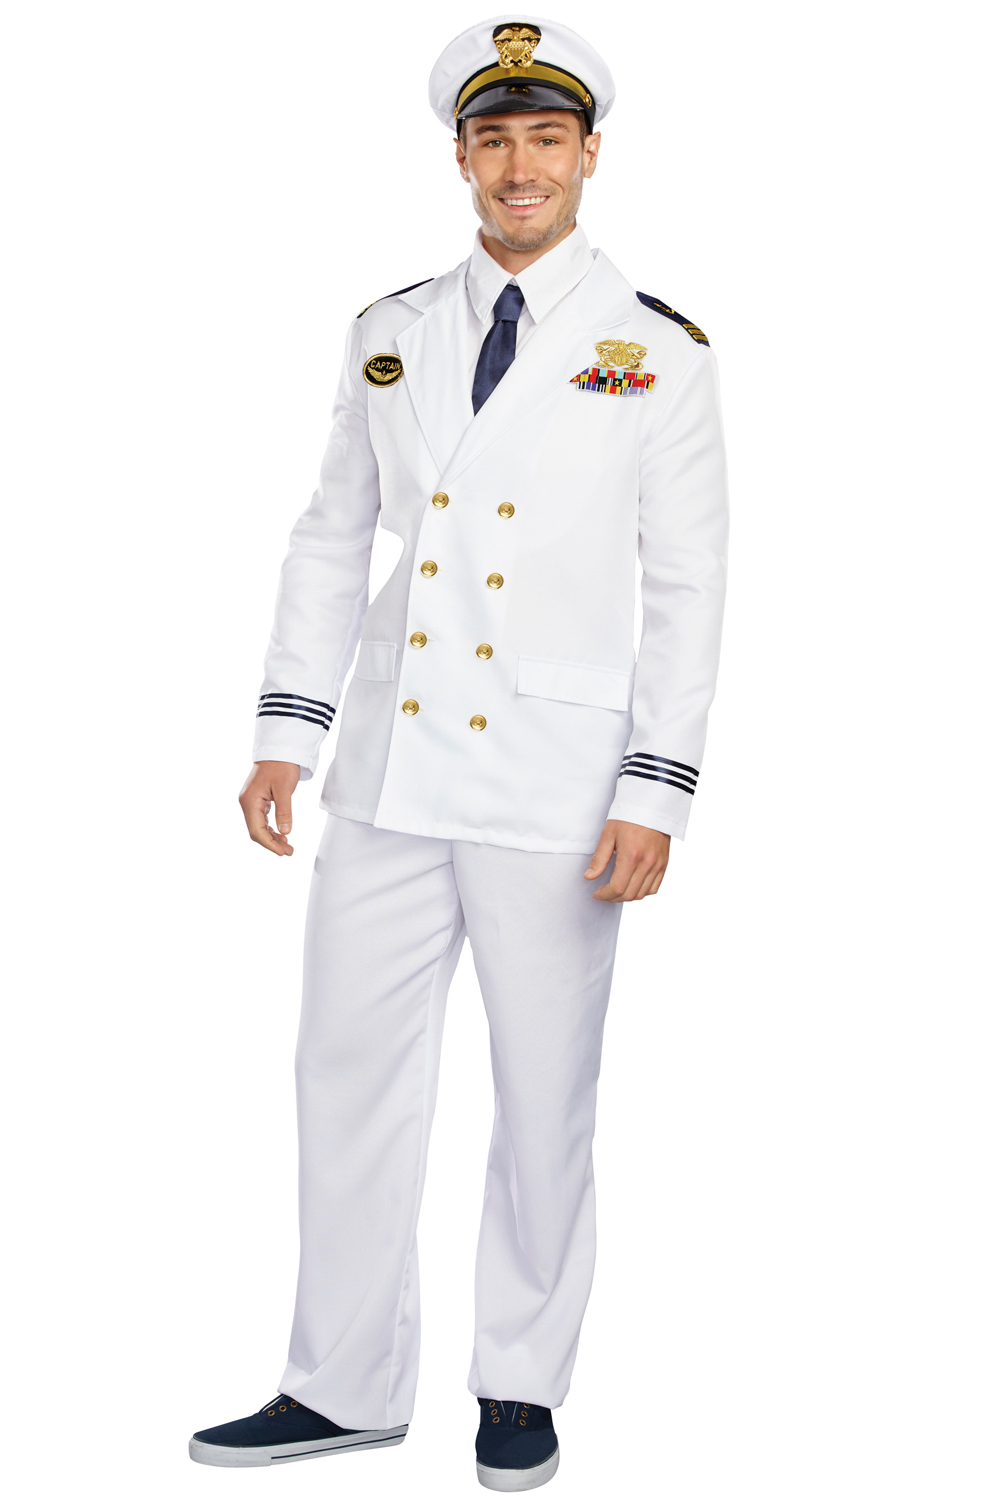 The Captain Adult Costume  sc 1 st  Pure Costumes & Adult Sailor Costumes - PureCostumes.com